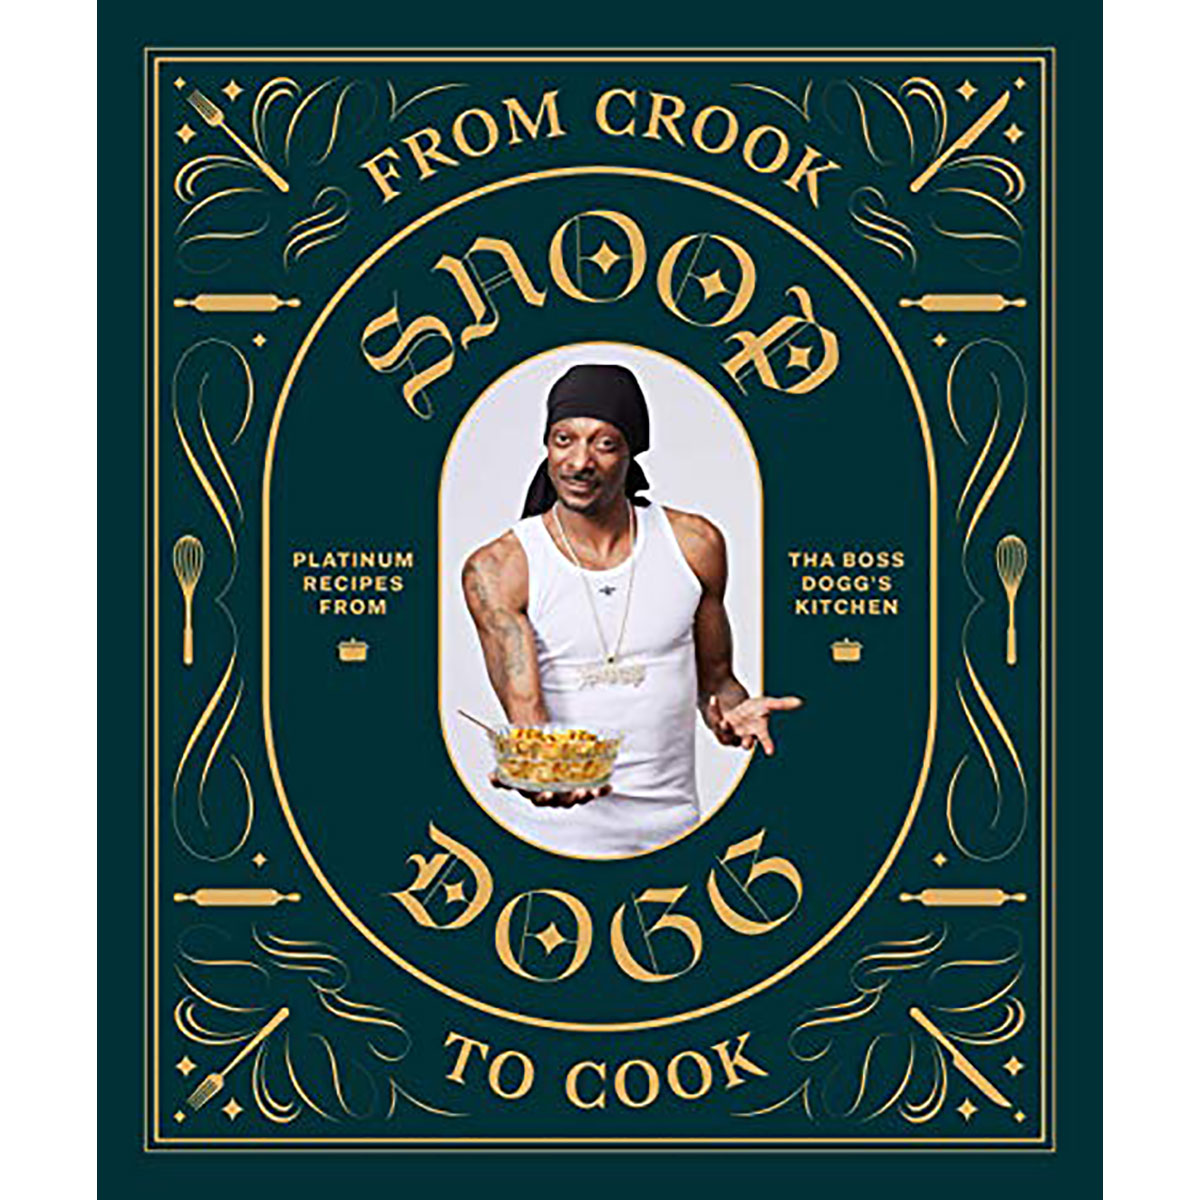 Gifts for Brother or Brother in Law: Snoop Dogg Cook Book on Amazon